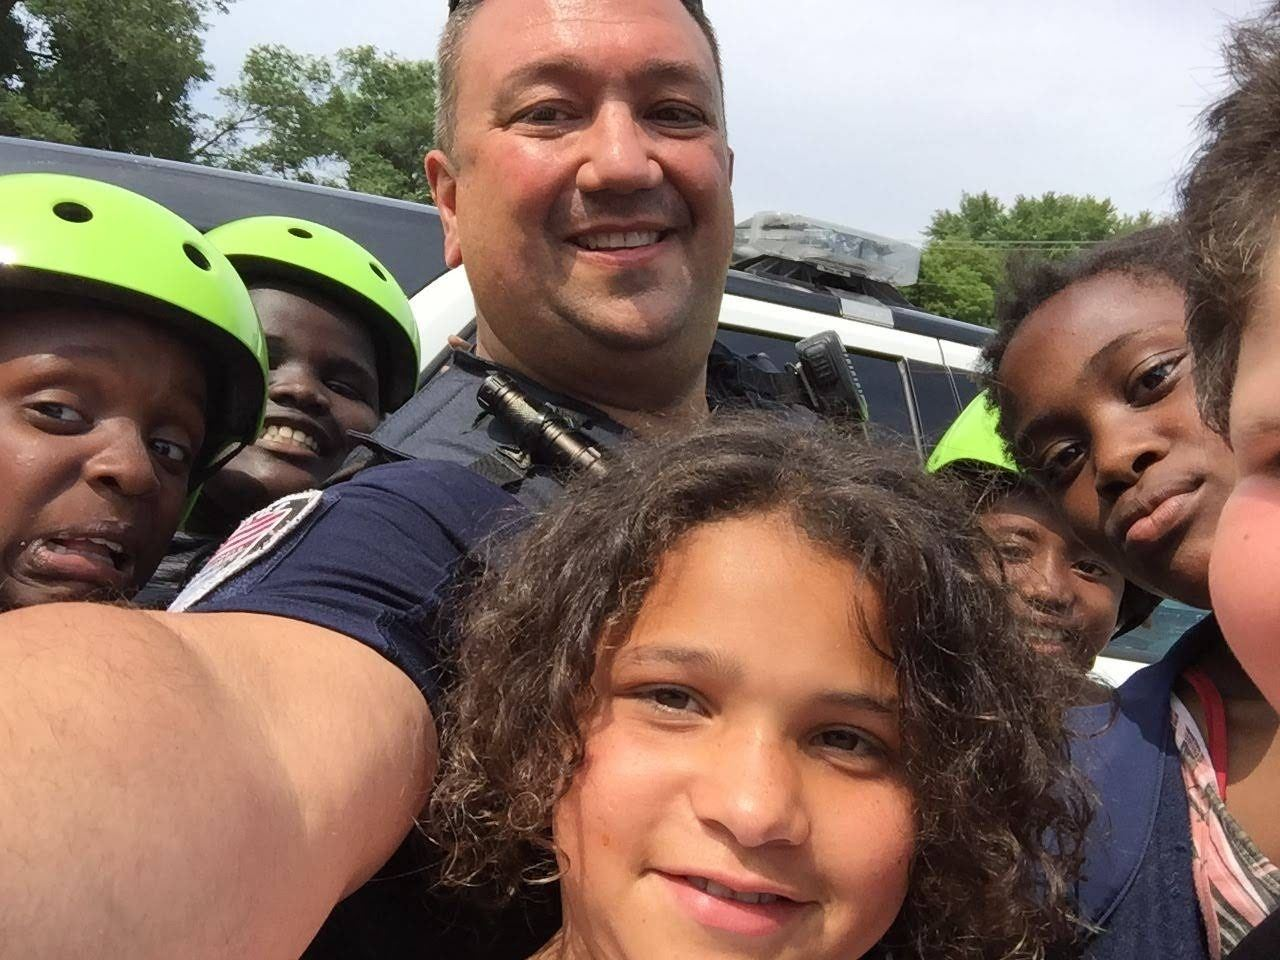 Winooski School Resource Officer and Students at School